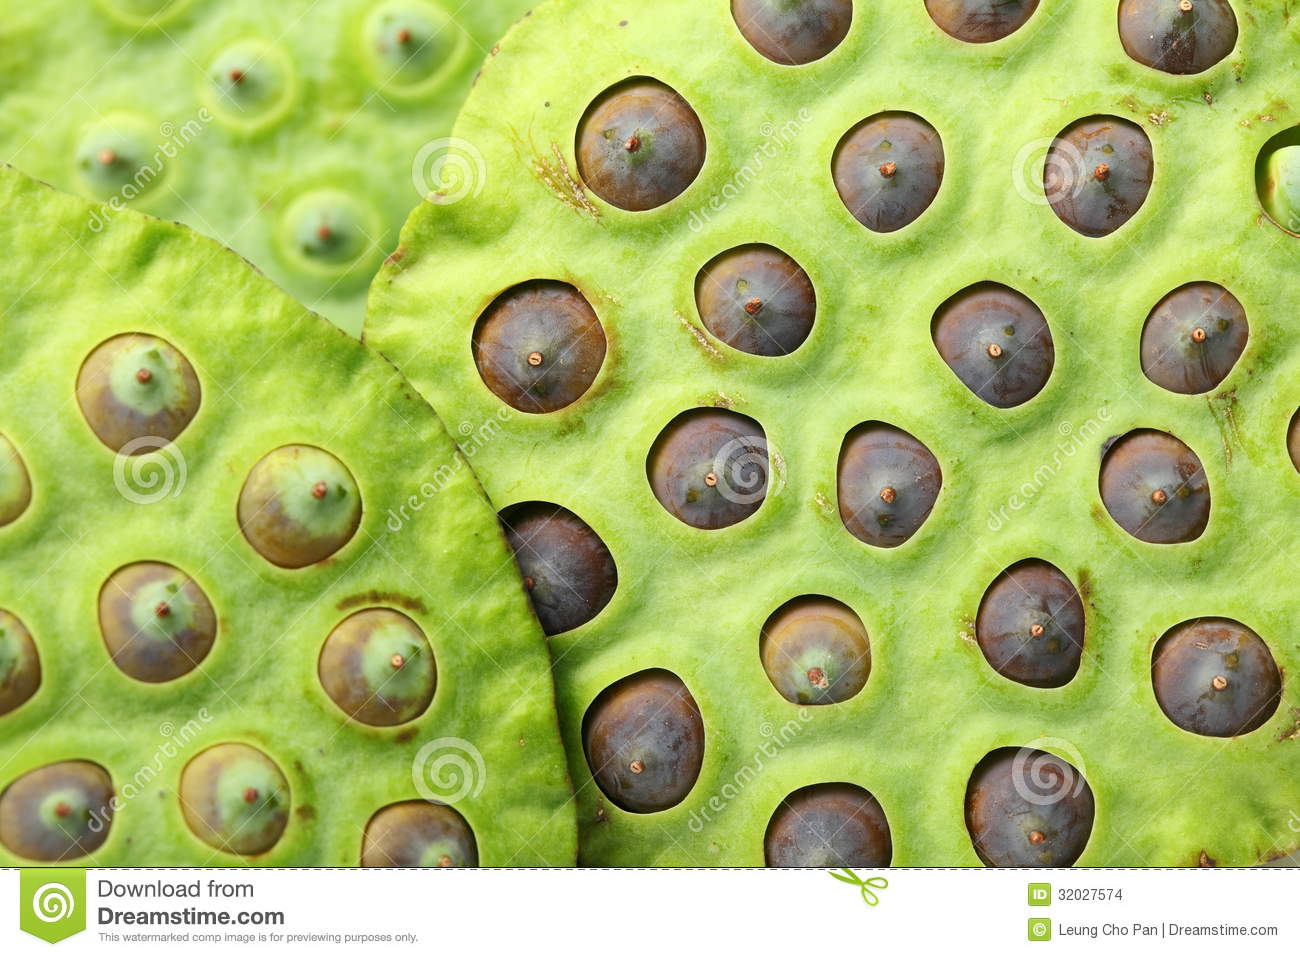 Lotus seed pod stock photo image of ingredient natural 32027574 lotus seed pod izmirmasajfo Image collections